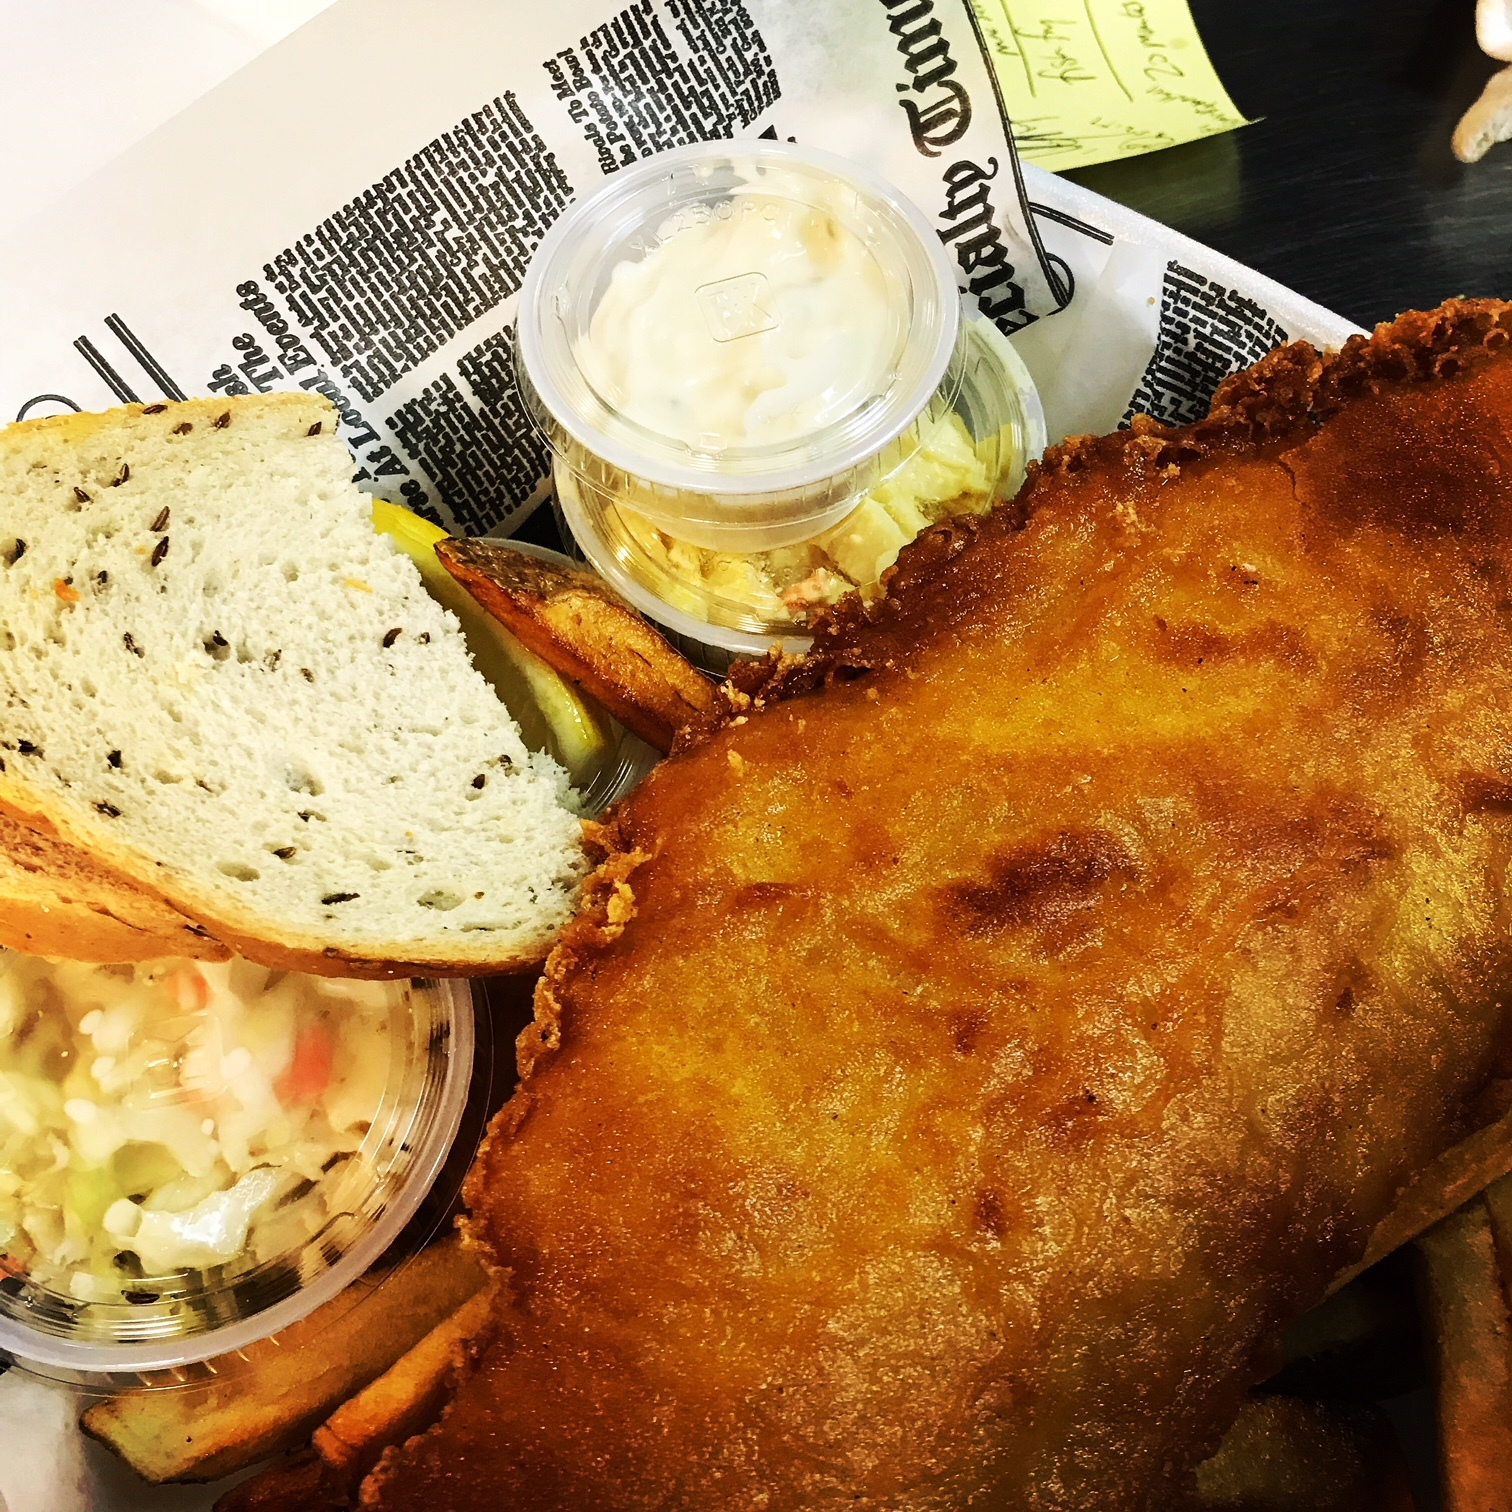 Beer Battered Haddock Fish Fry - $11.99